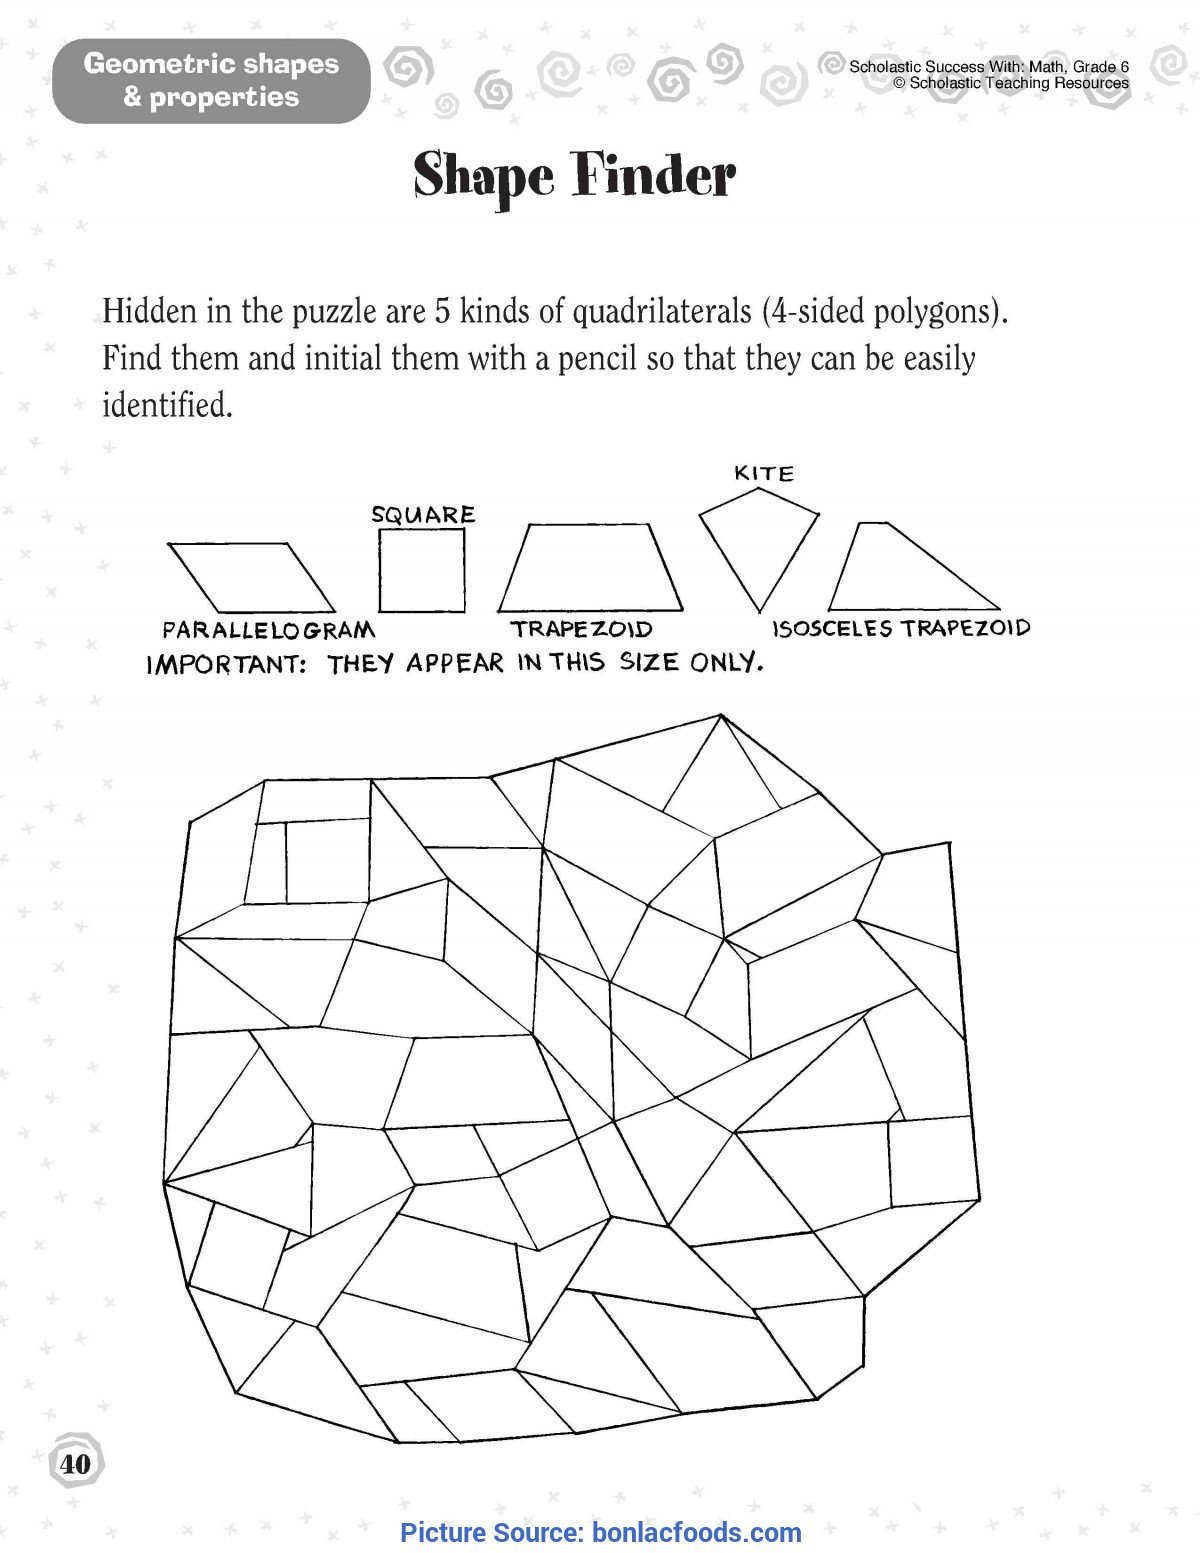 3d Shapes Worksheets 2nd Grade Find these 2nd Grade Geometry Posters for Free Modeled